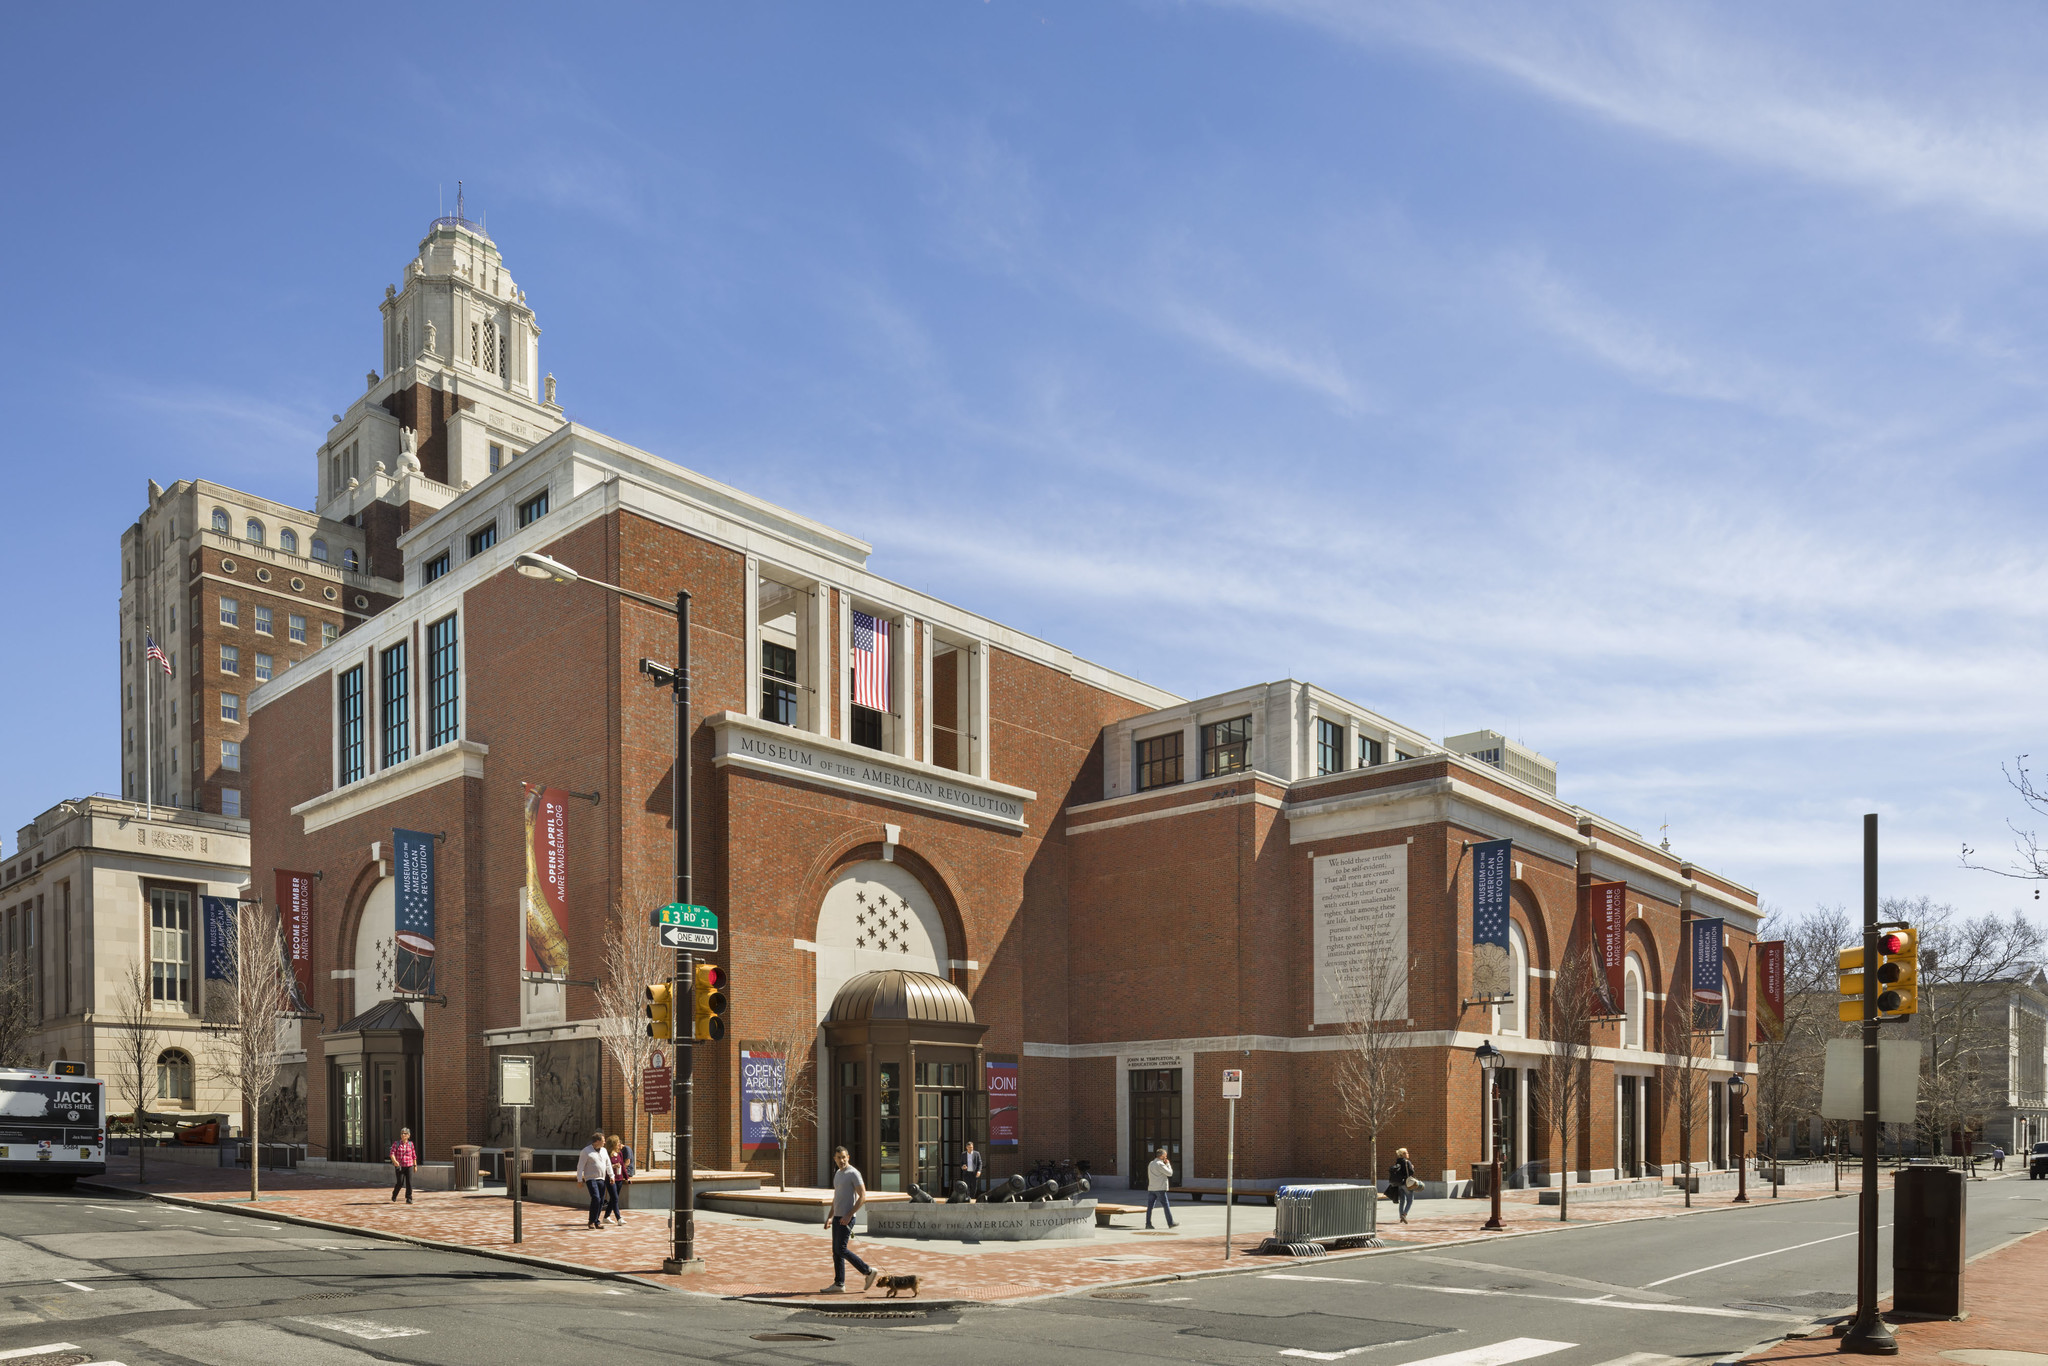 An identity crisis for American architecture?